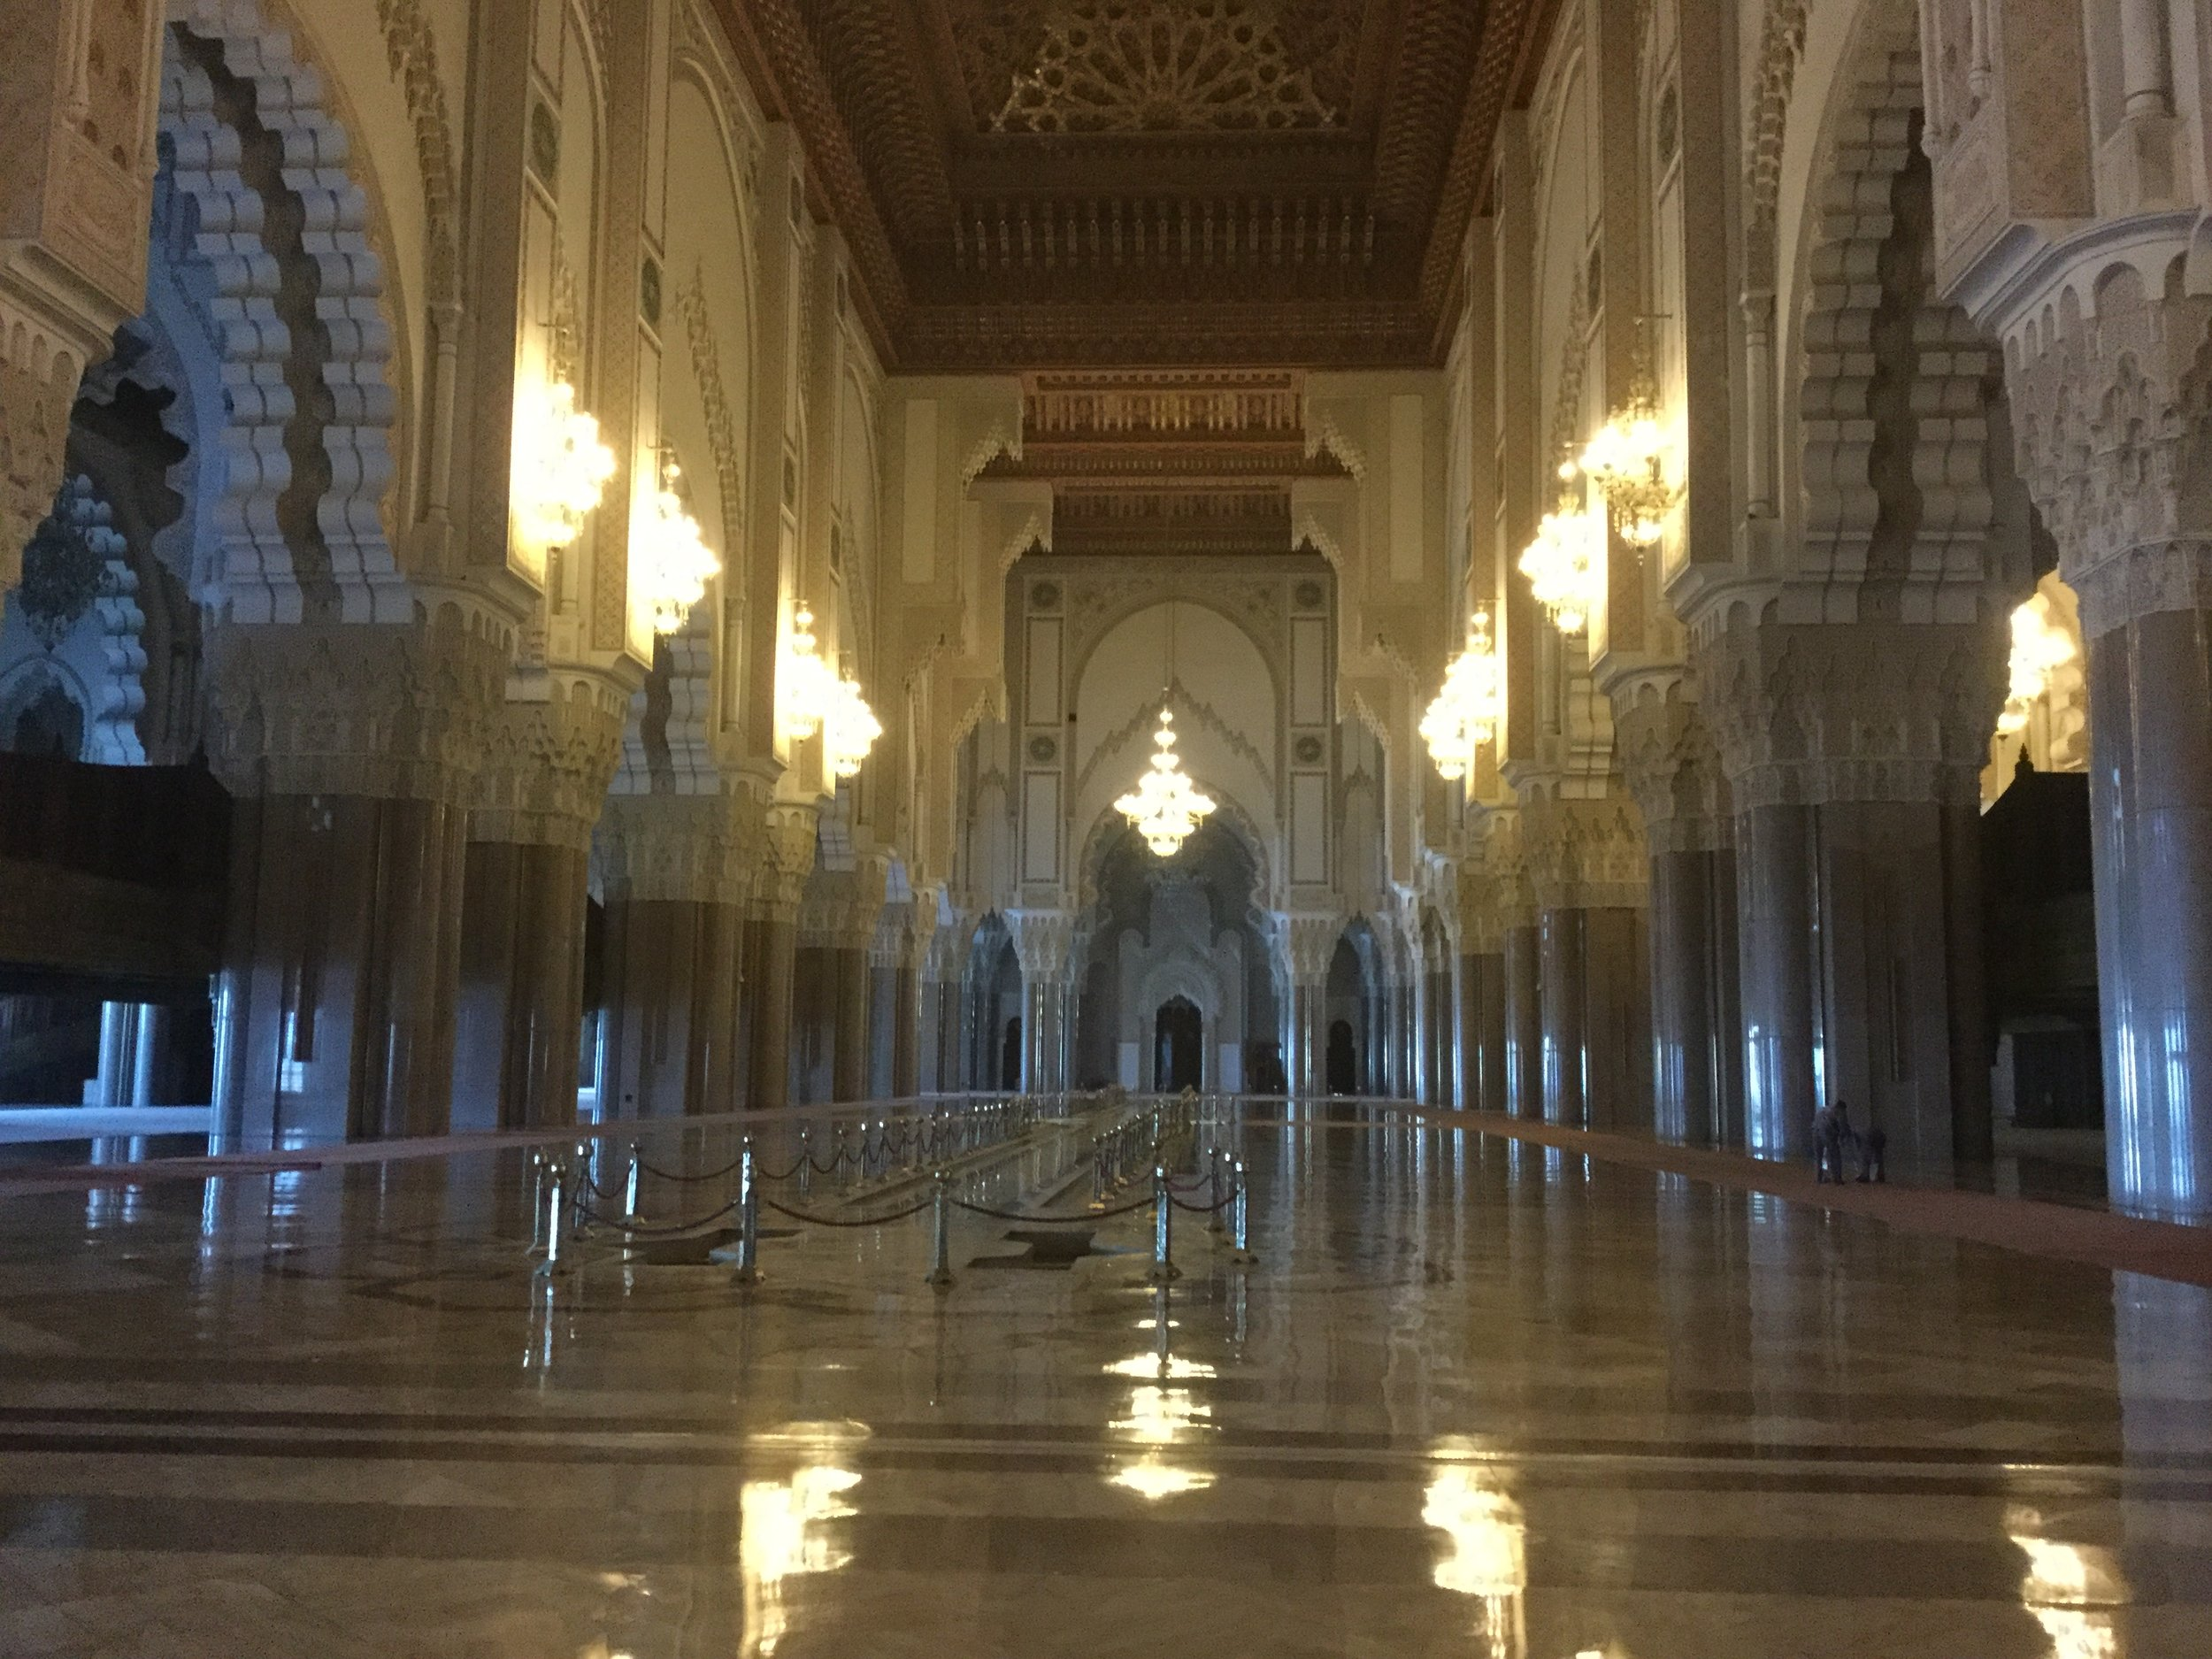 The mosque is like a palace inside. It is really really beautiful.